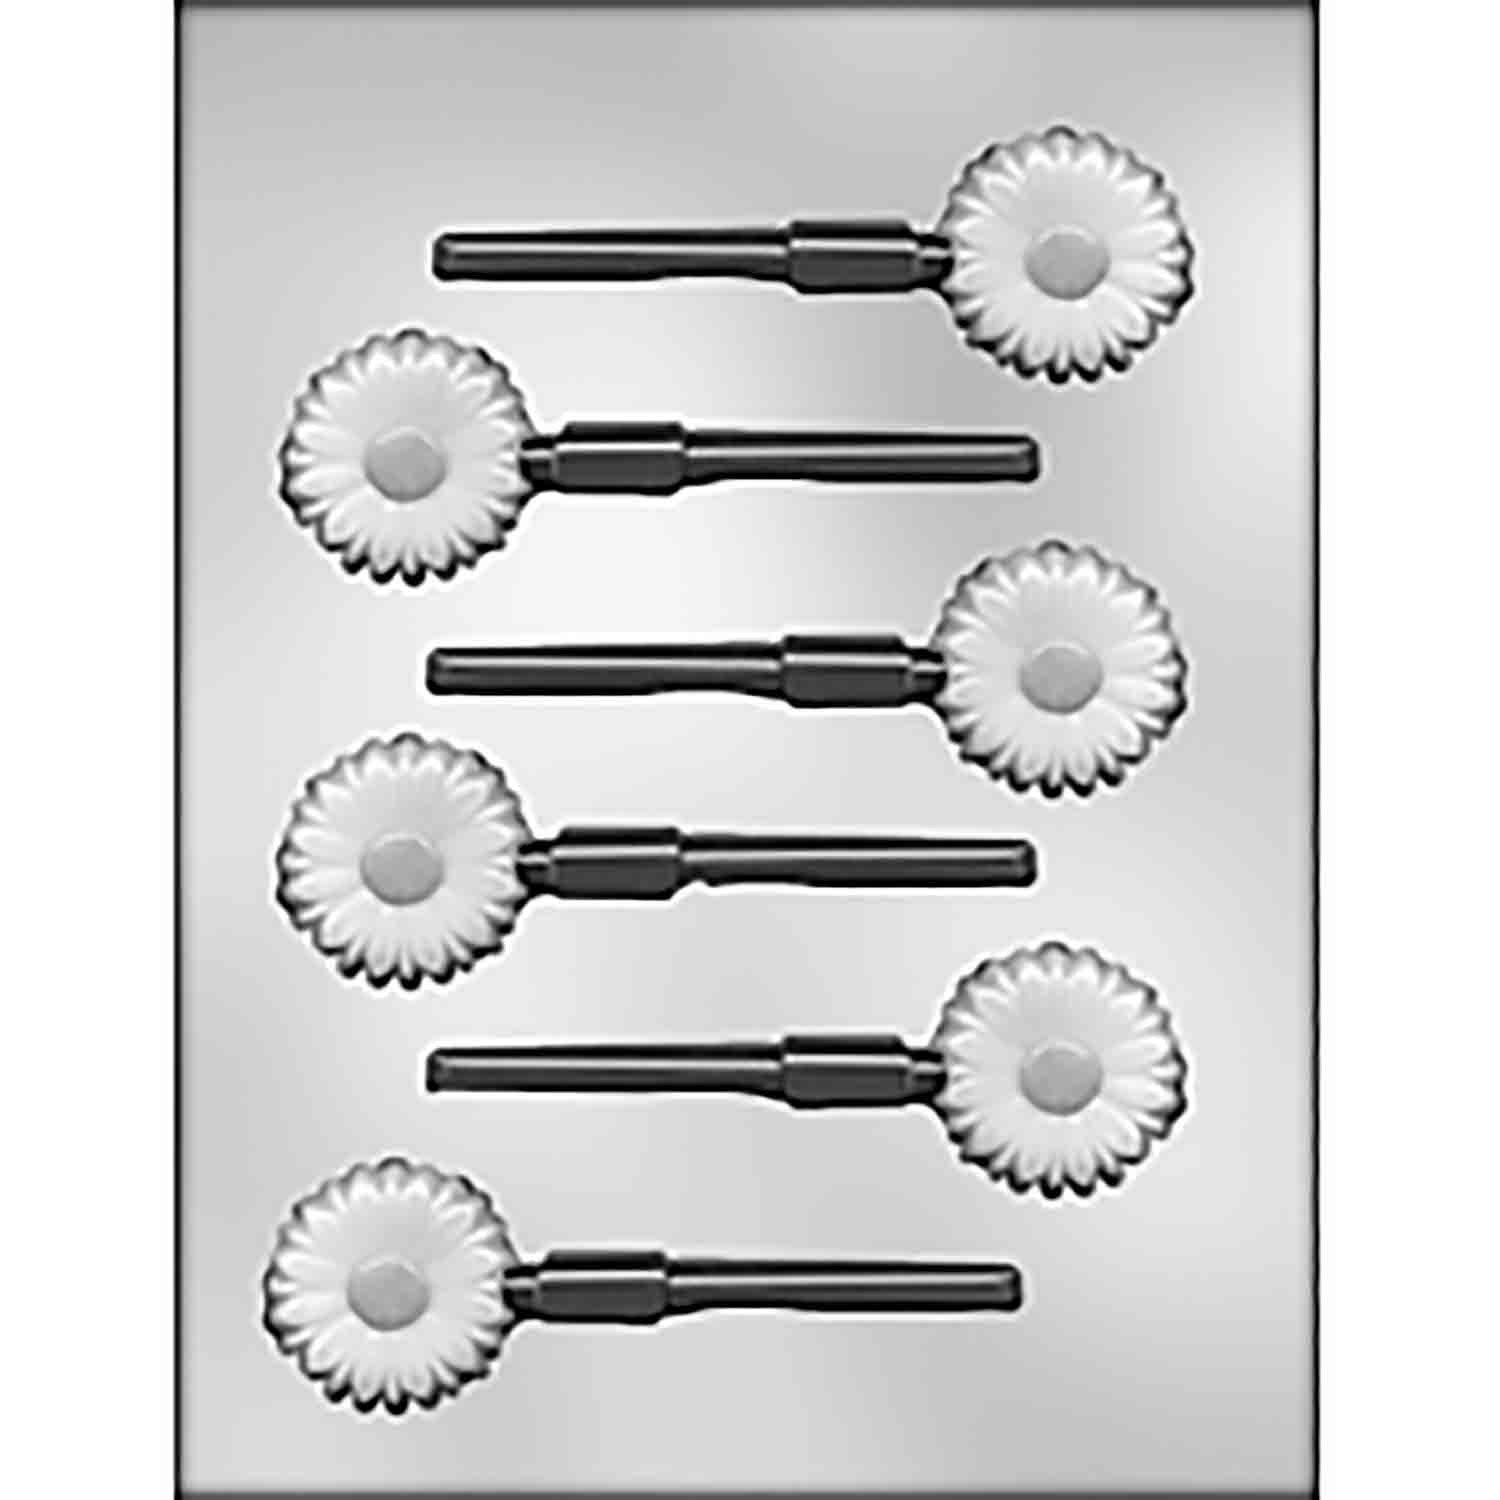 Daisy Sucker Chocolate Candy Mold